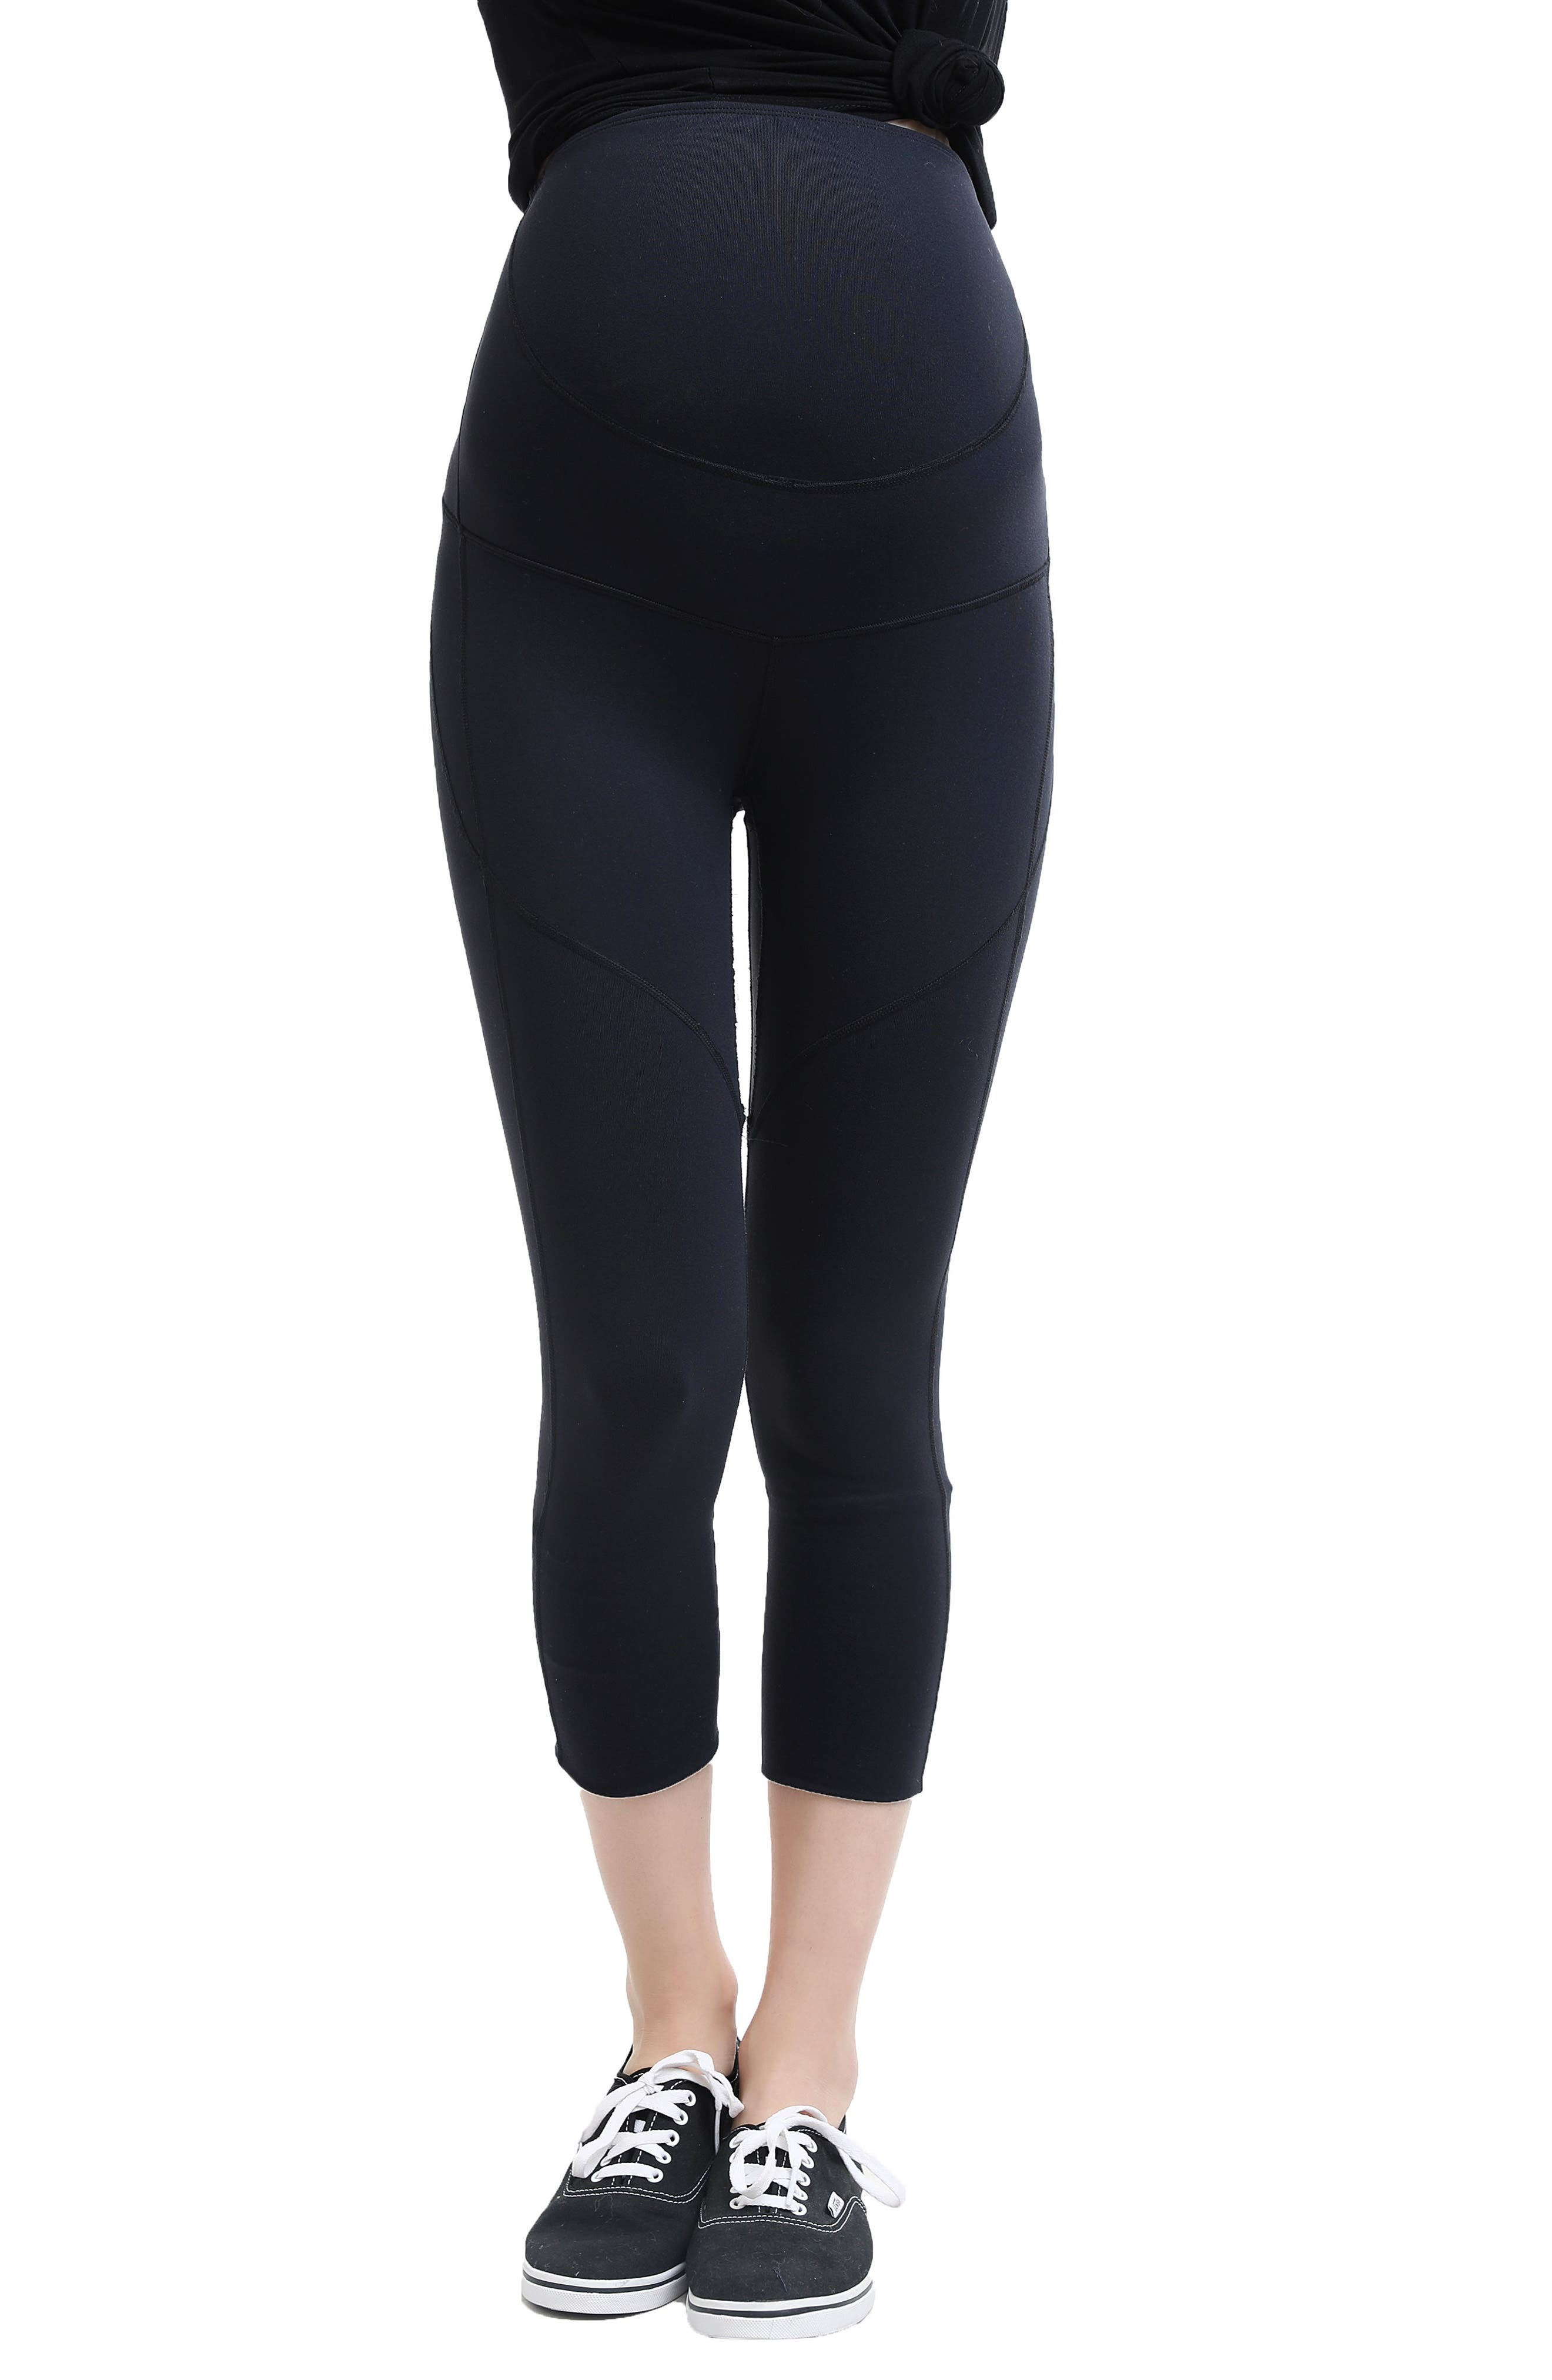 Elle High Performance Cropped Maternity Leggings,                         Main,                         color, Black